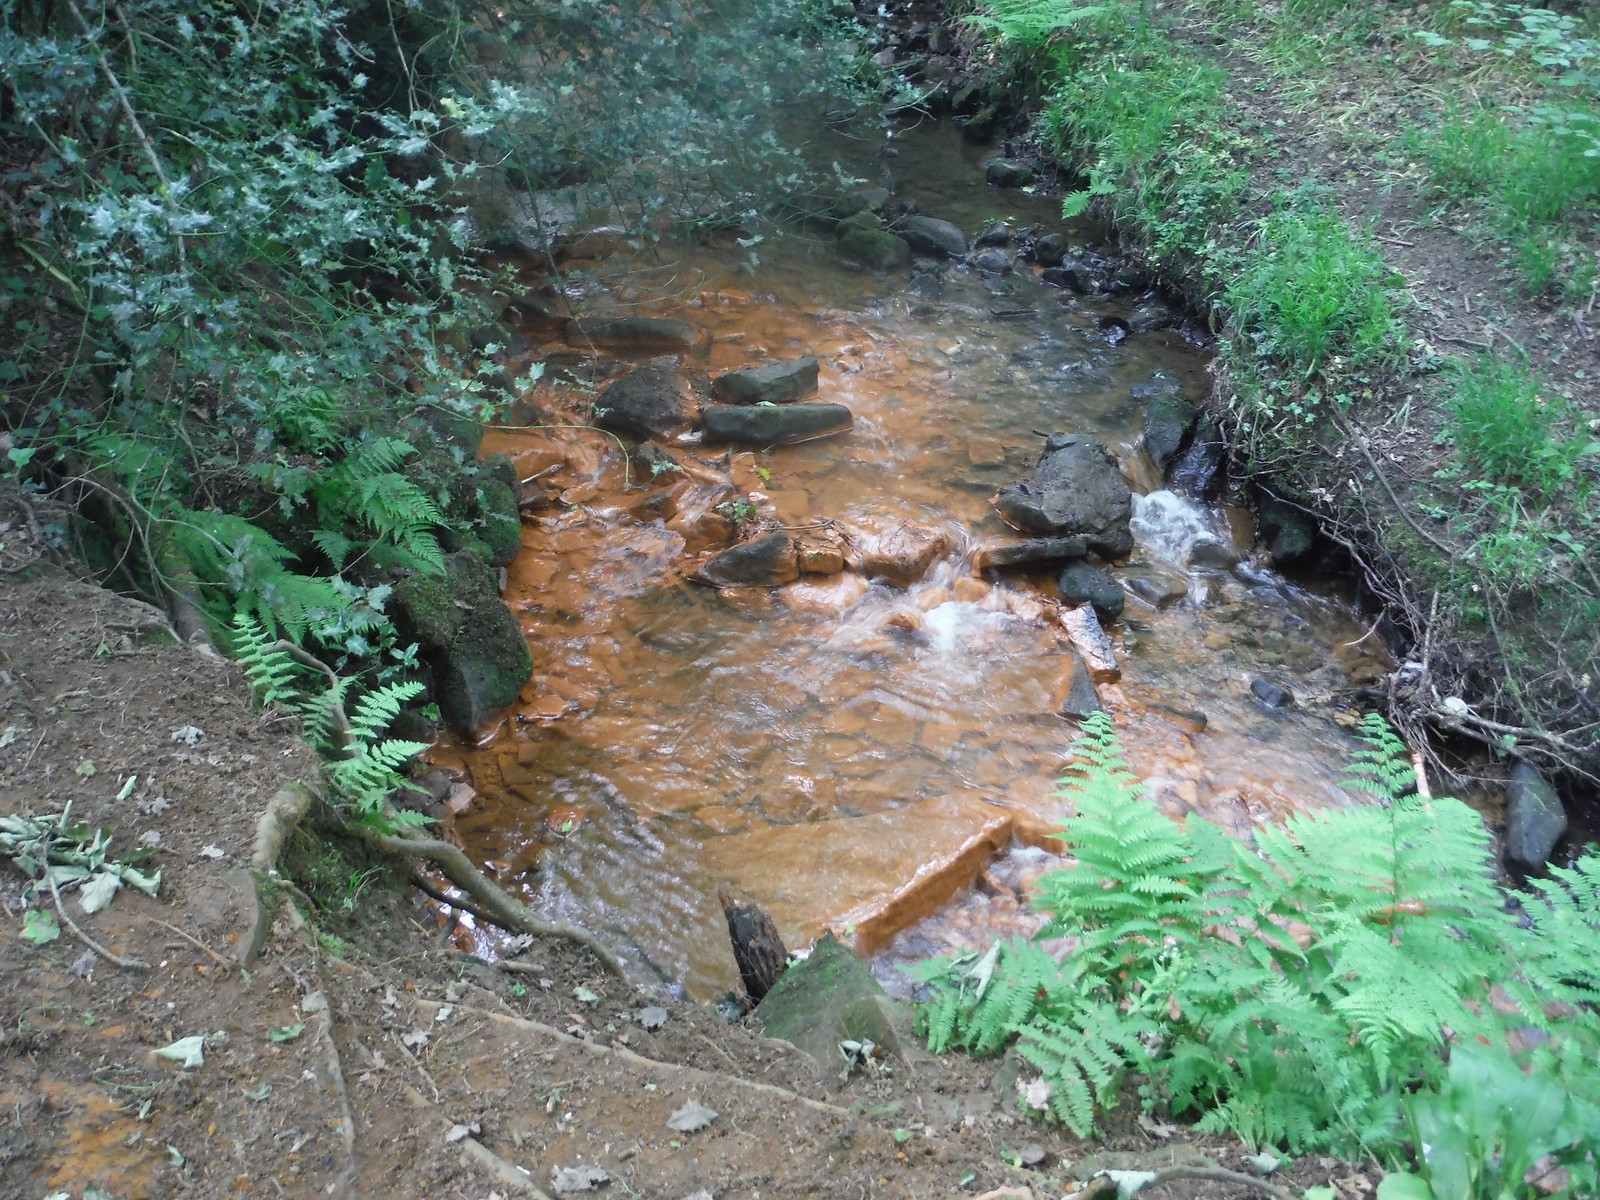 Ochre-coloured Stream, Ecclesall Woods SWC Walk 267 - Sheffield Circular (via Porter, Limb, Sheaf and Gleadless Valleys)